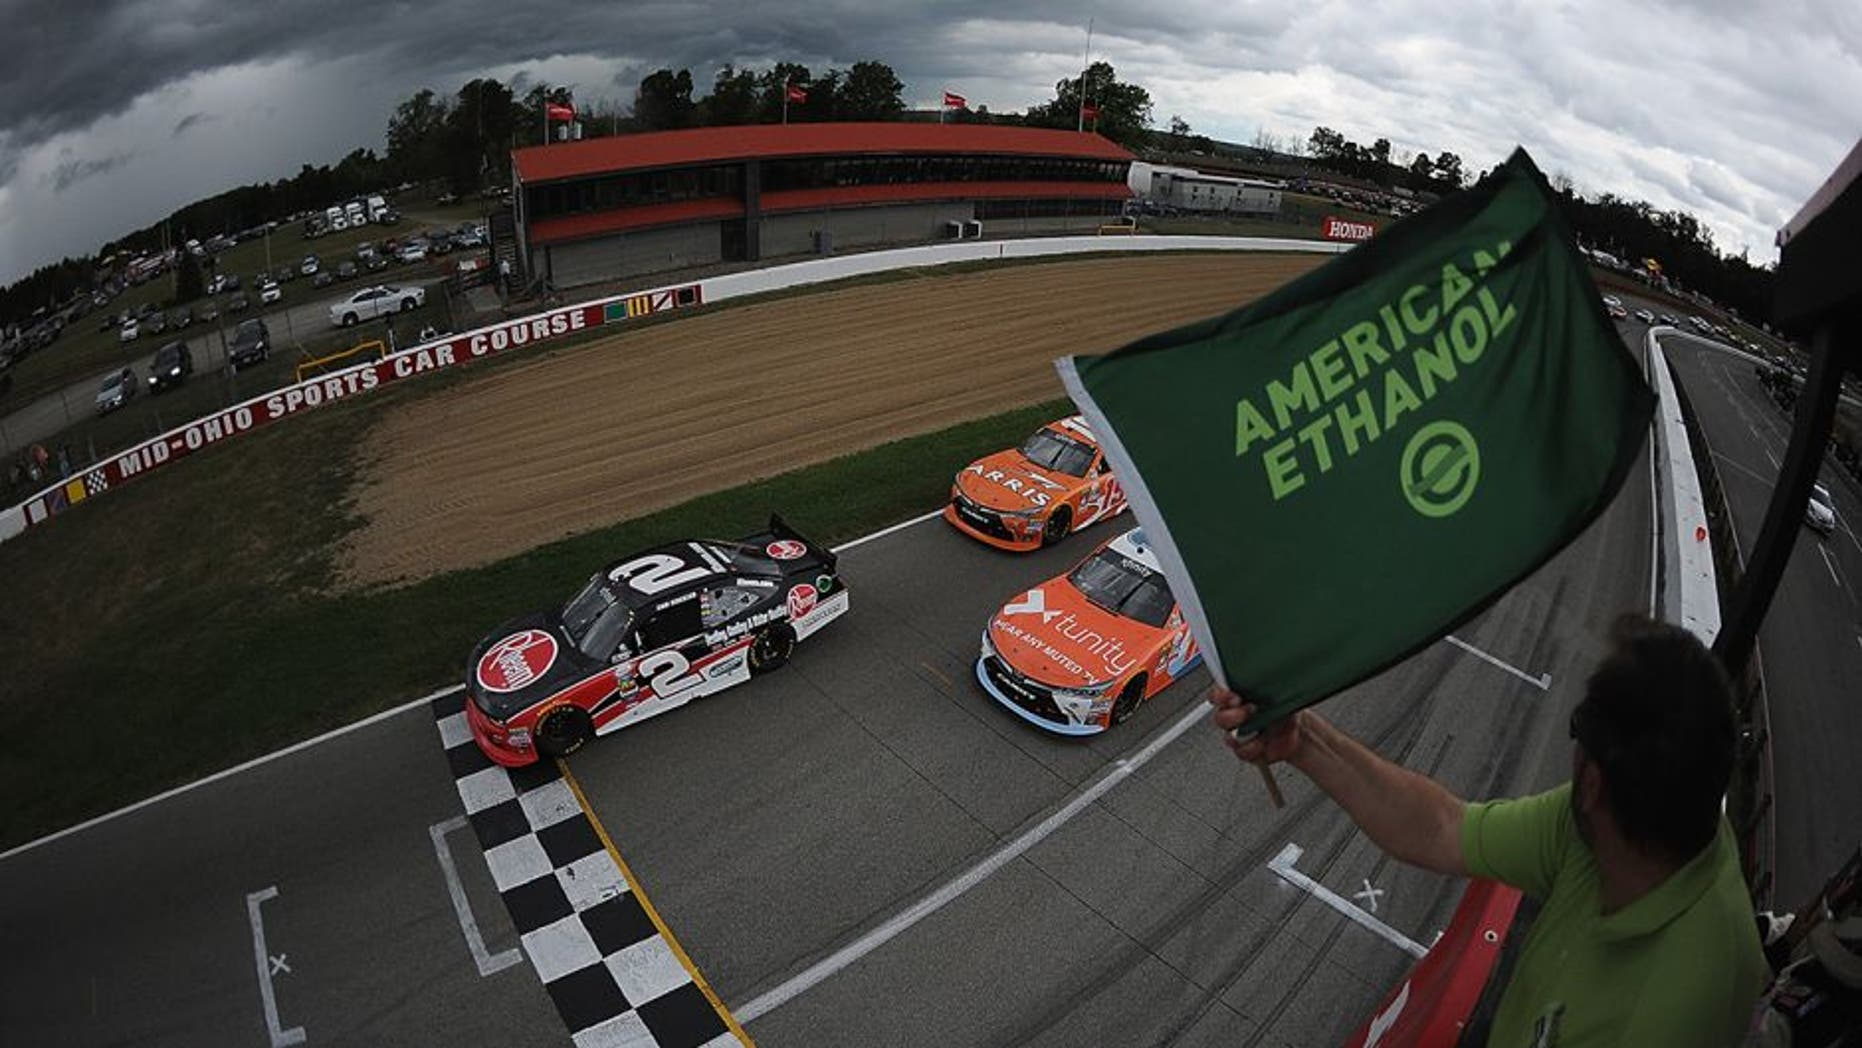 LEXINGTON, OH - AUGUST 13: Sam Hornish Jr., driver of the #2 Rheem Chevrolet and Owen Kelly, driver of the #18 Tunity Toyota, lead at the start of the 4th annual NASCAR XFINITY Series Mid-Ohio Challenge at Mid-Ohio Sports Car Course on August 13, 2016 in Lexington, Ohio. (Photo by Jonathan Moore/Getty Images)